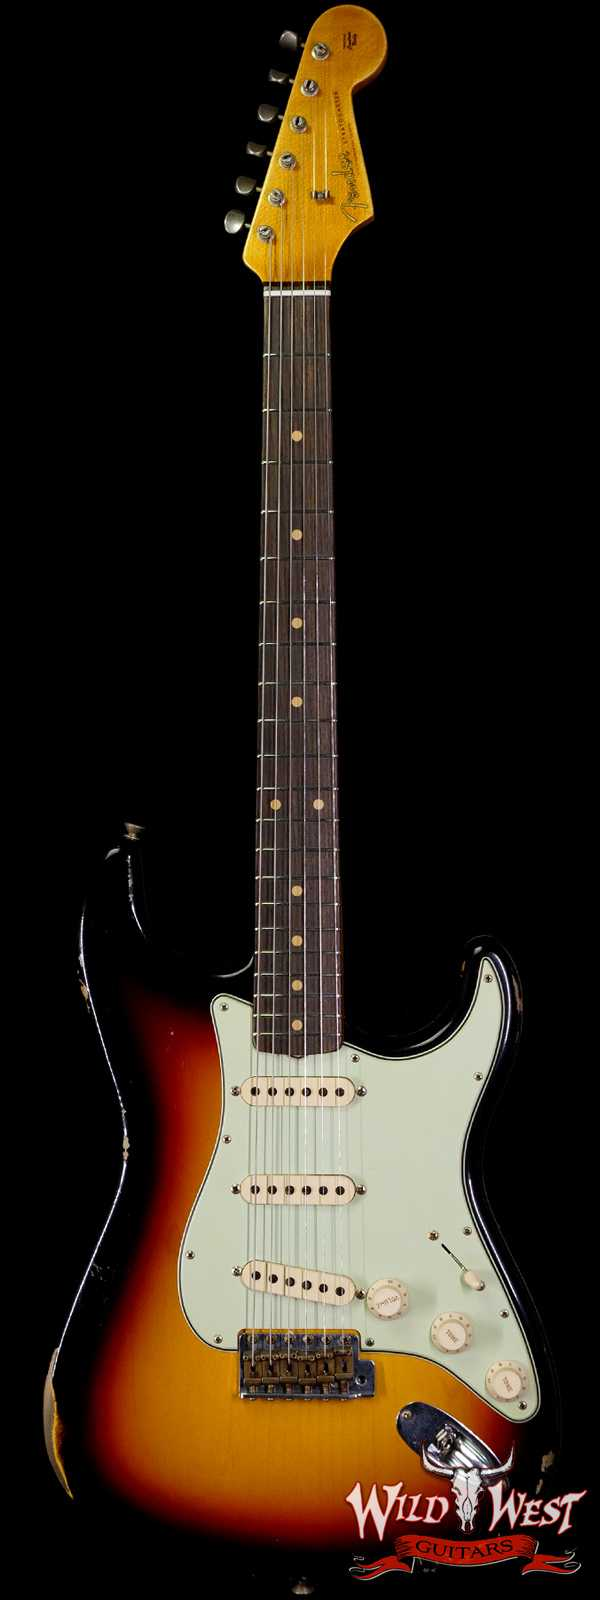 Fender Custom Shop 1962 Stratocaster Relic AAA Rosewood Board with Quartersawn Maple Neck 3 Tone Sunburst